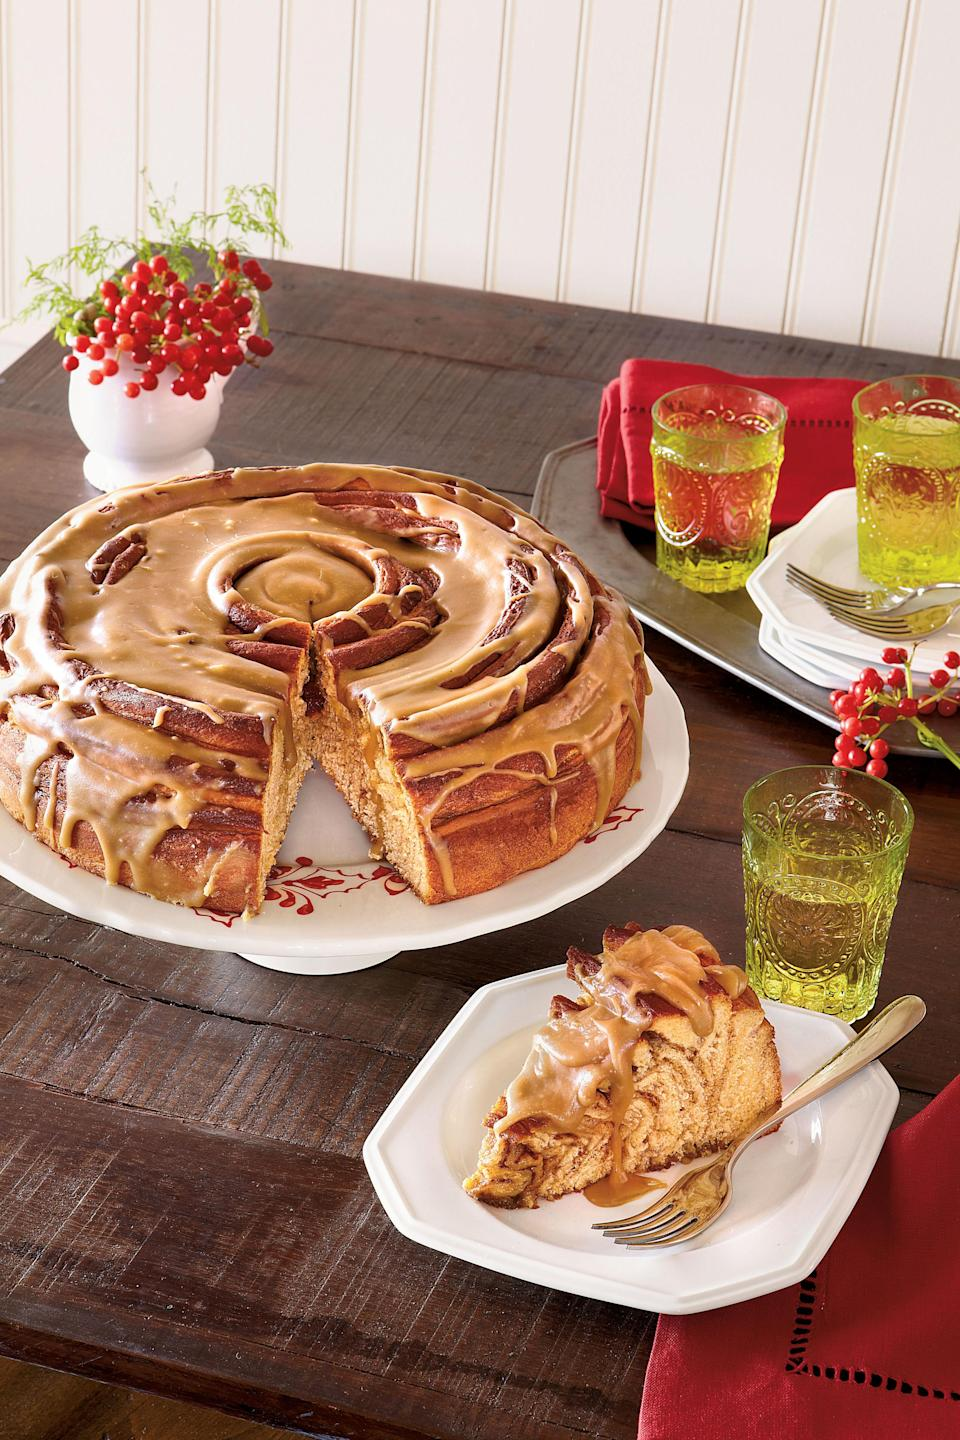 """<p><strong>Recipe:</strong> <a href=""""http://www.myrecipes.com/recipe/sweet-potato-coffee-cake-50400000117946/"""" rel=""""nofollow noopener"""" target=""""_blank"""" data-ylk=""""slk:Sweet Potato Coffee Cake with Caramel Glaze"""" class=""""link rapid-noclick-resp""""><strong>Sweet Potato Coffee Cake with Caramel Glaze</strong></a></p> <p>Sweet potato, orange zest, and ground cinnamon offer flavors of the season in this morning treat. Top it all off with a drizzle of <a href=""""http://www.myrecipes.com/recipe/caramel-glaze-50400000117947/"""" rel=""""nofollow noopener"""" target=""""_blank"""" data-ylk=""""slk:Caramel Glaze"""" class=""""link rapid-noclick-resp"""">Caramel Glaze</a>.</p>"""